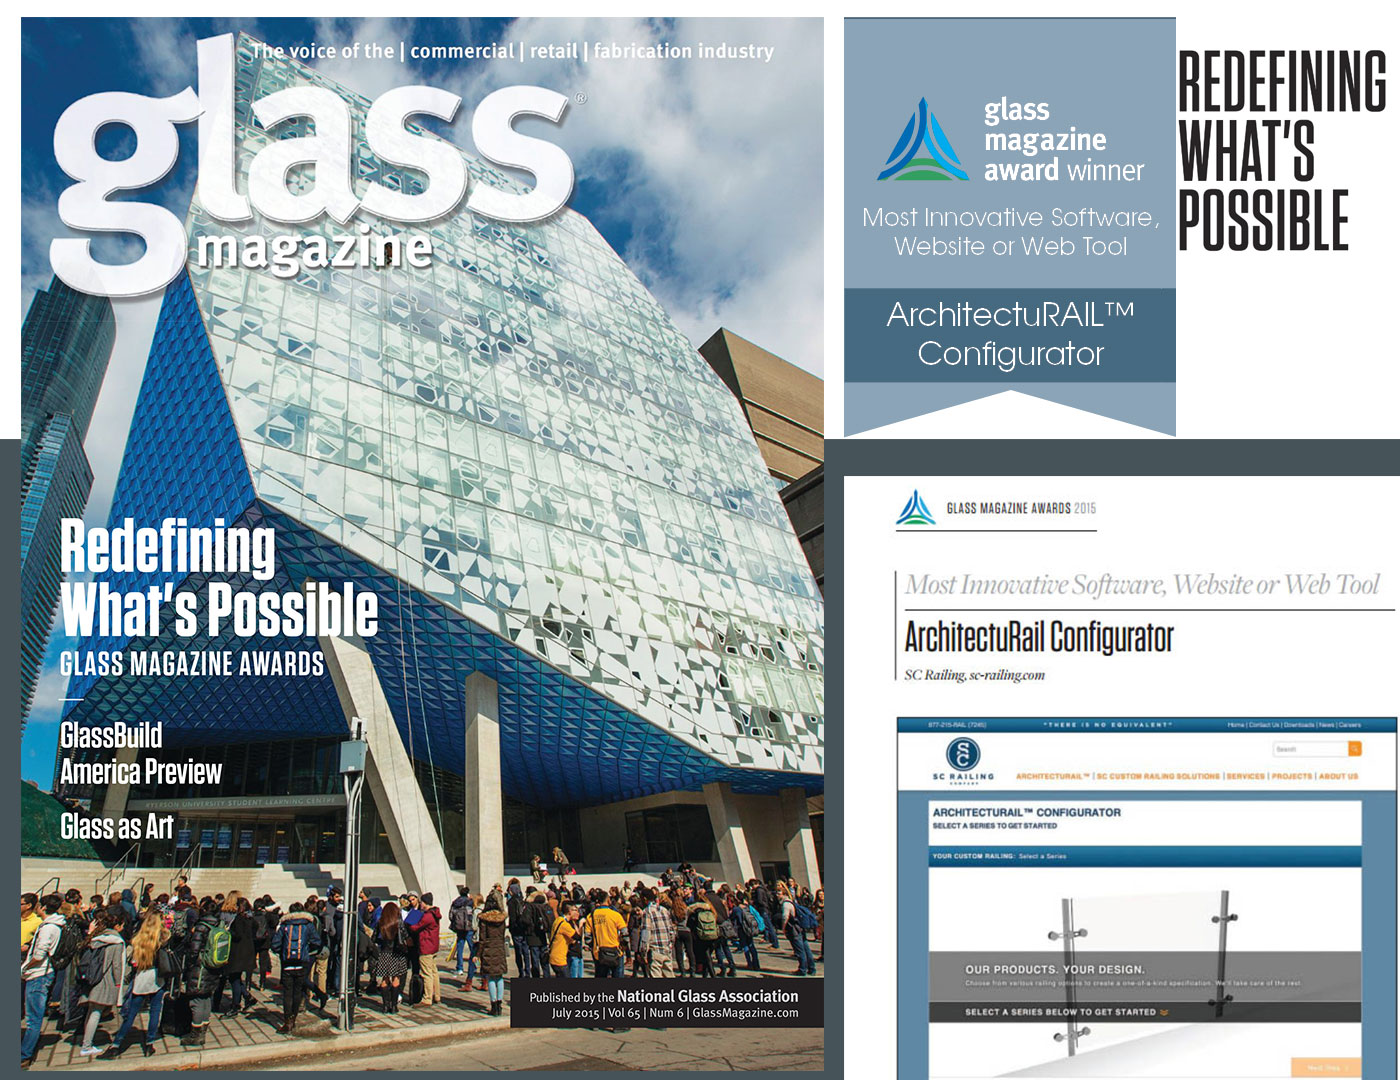 SC Railing is Honored to Receive Glass Magazine's Recognition